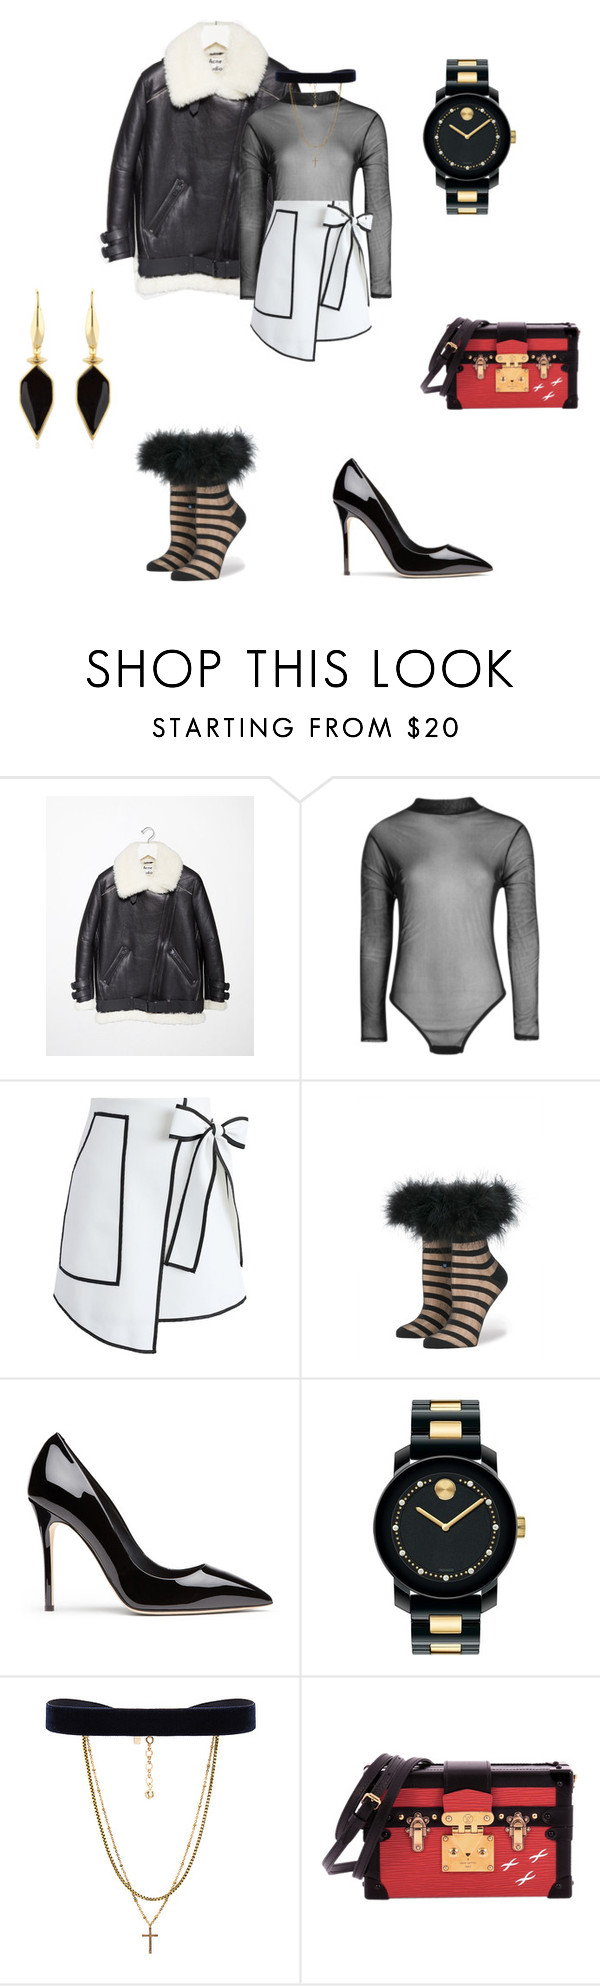 """Black Aviator"" by jfashion101 ❤ liked on Polyvore featuring Acne Studios, Boohoo, Chicwish, Movado, Vanessa Mooney, Louis Vuitton, Isabel Marant, white, black and Rihanna"